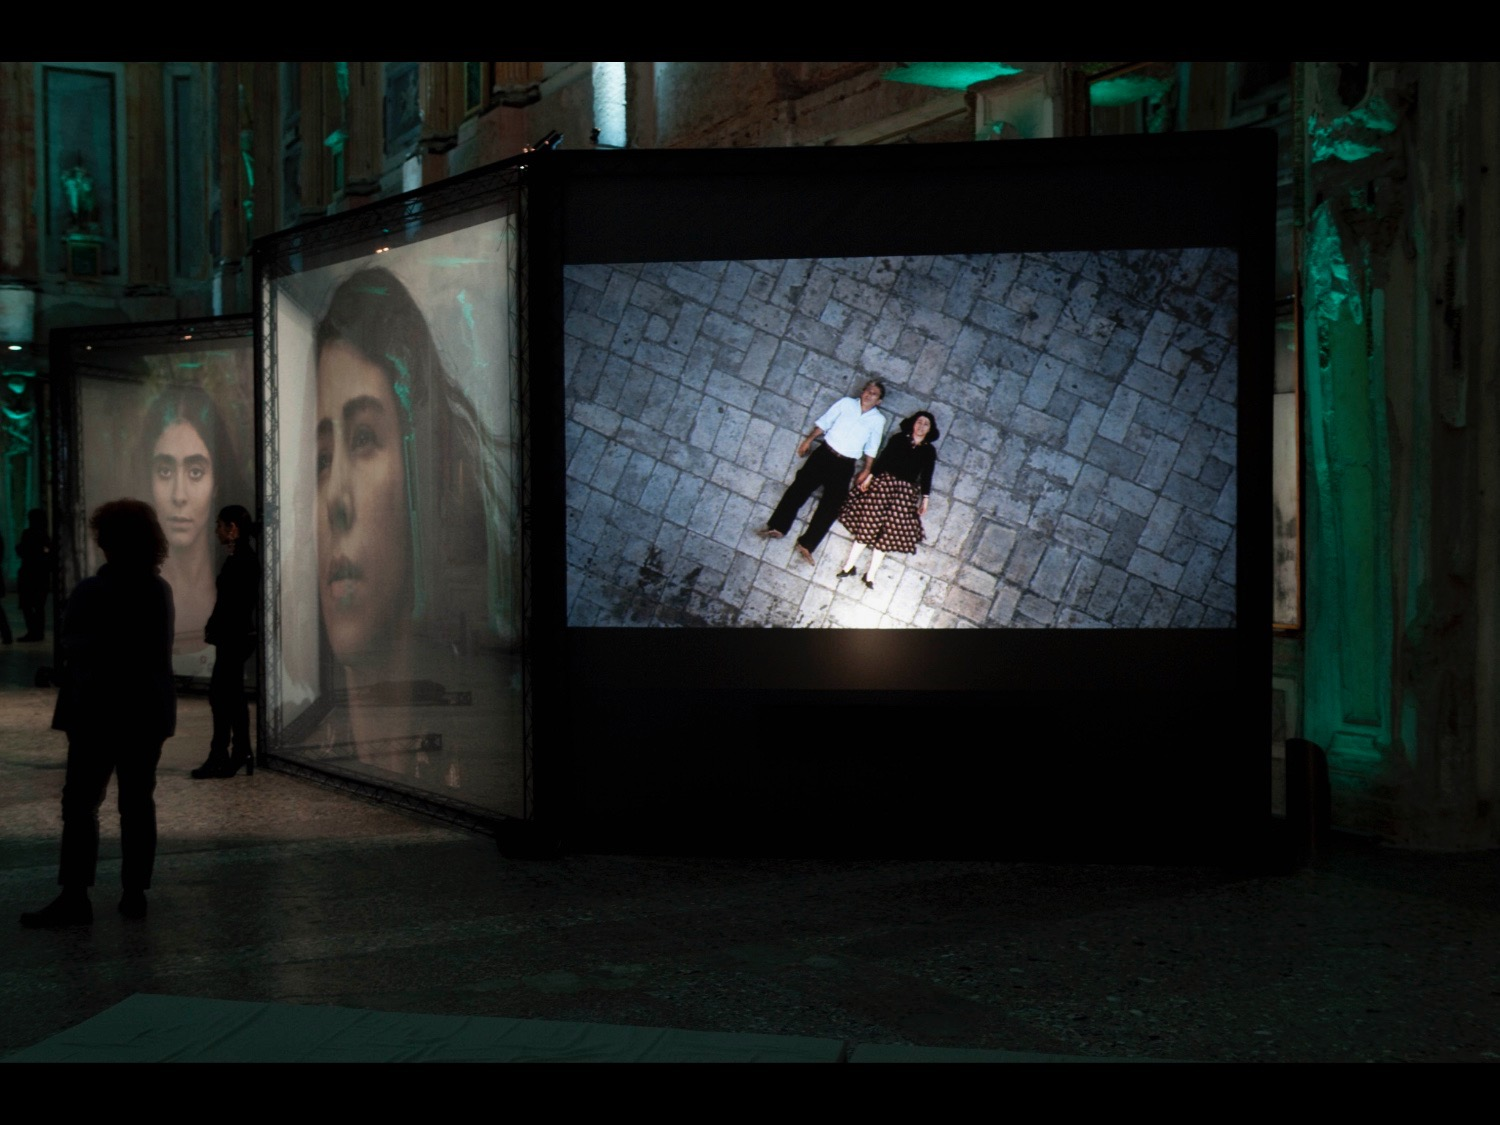 Women Without Men an installation by Shirin Neshat Sala Cariatidi, Palazzo Reale Milan, 2011 © photo by Luciano Romano (photo courtesy of Change Performing Arts)